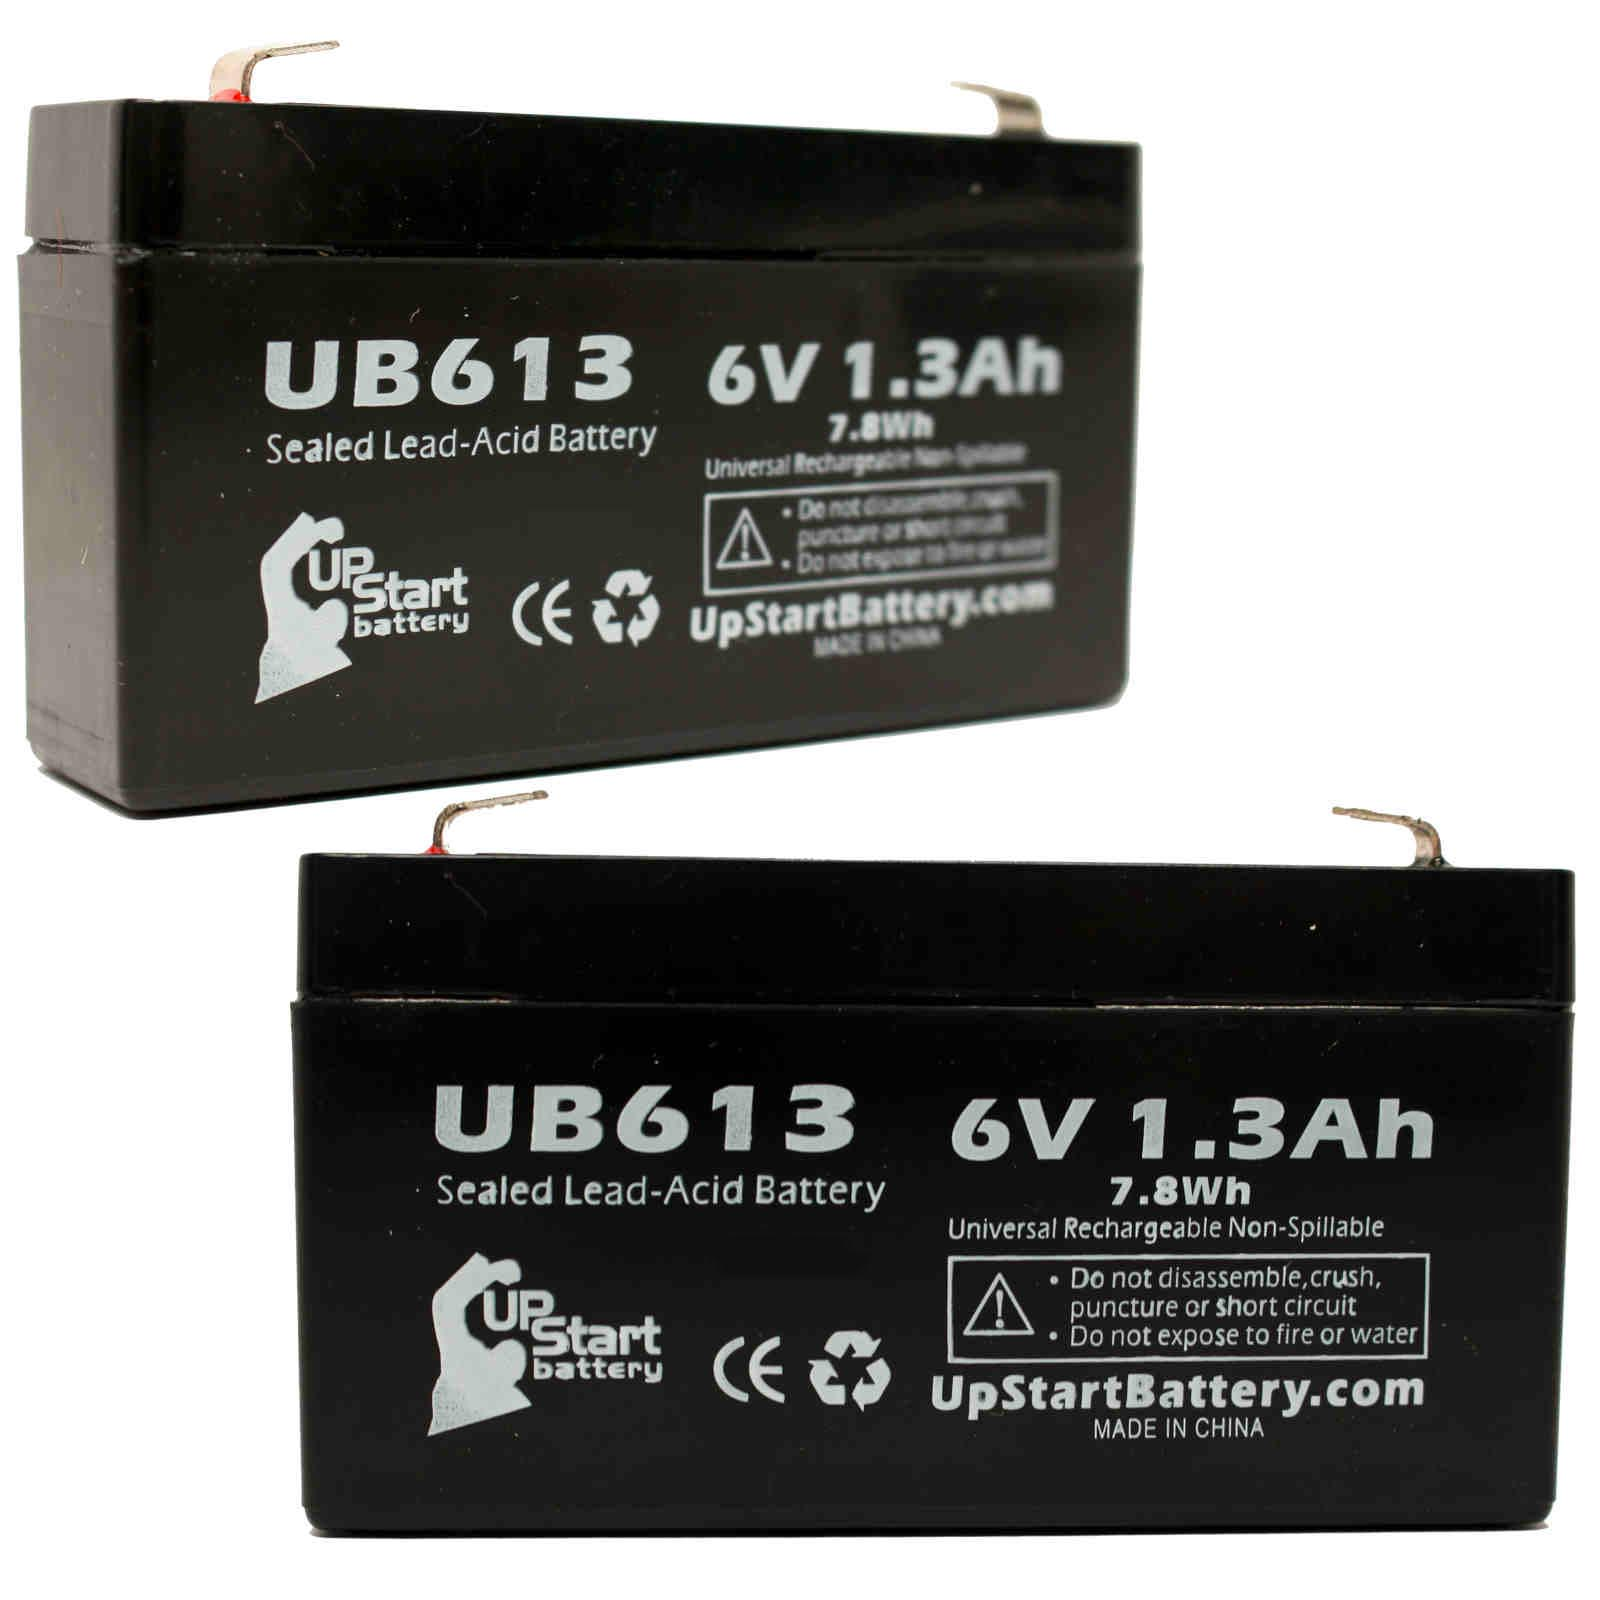 UpStart Battery 2x Pack - CAS MEDICAL 920 Battery - Replacement UB613 Universal Sealed Lead Acid Battery (6V, 1.3Ah) at Sears.com